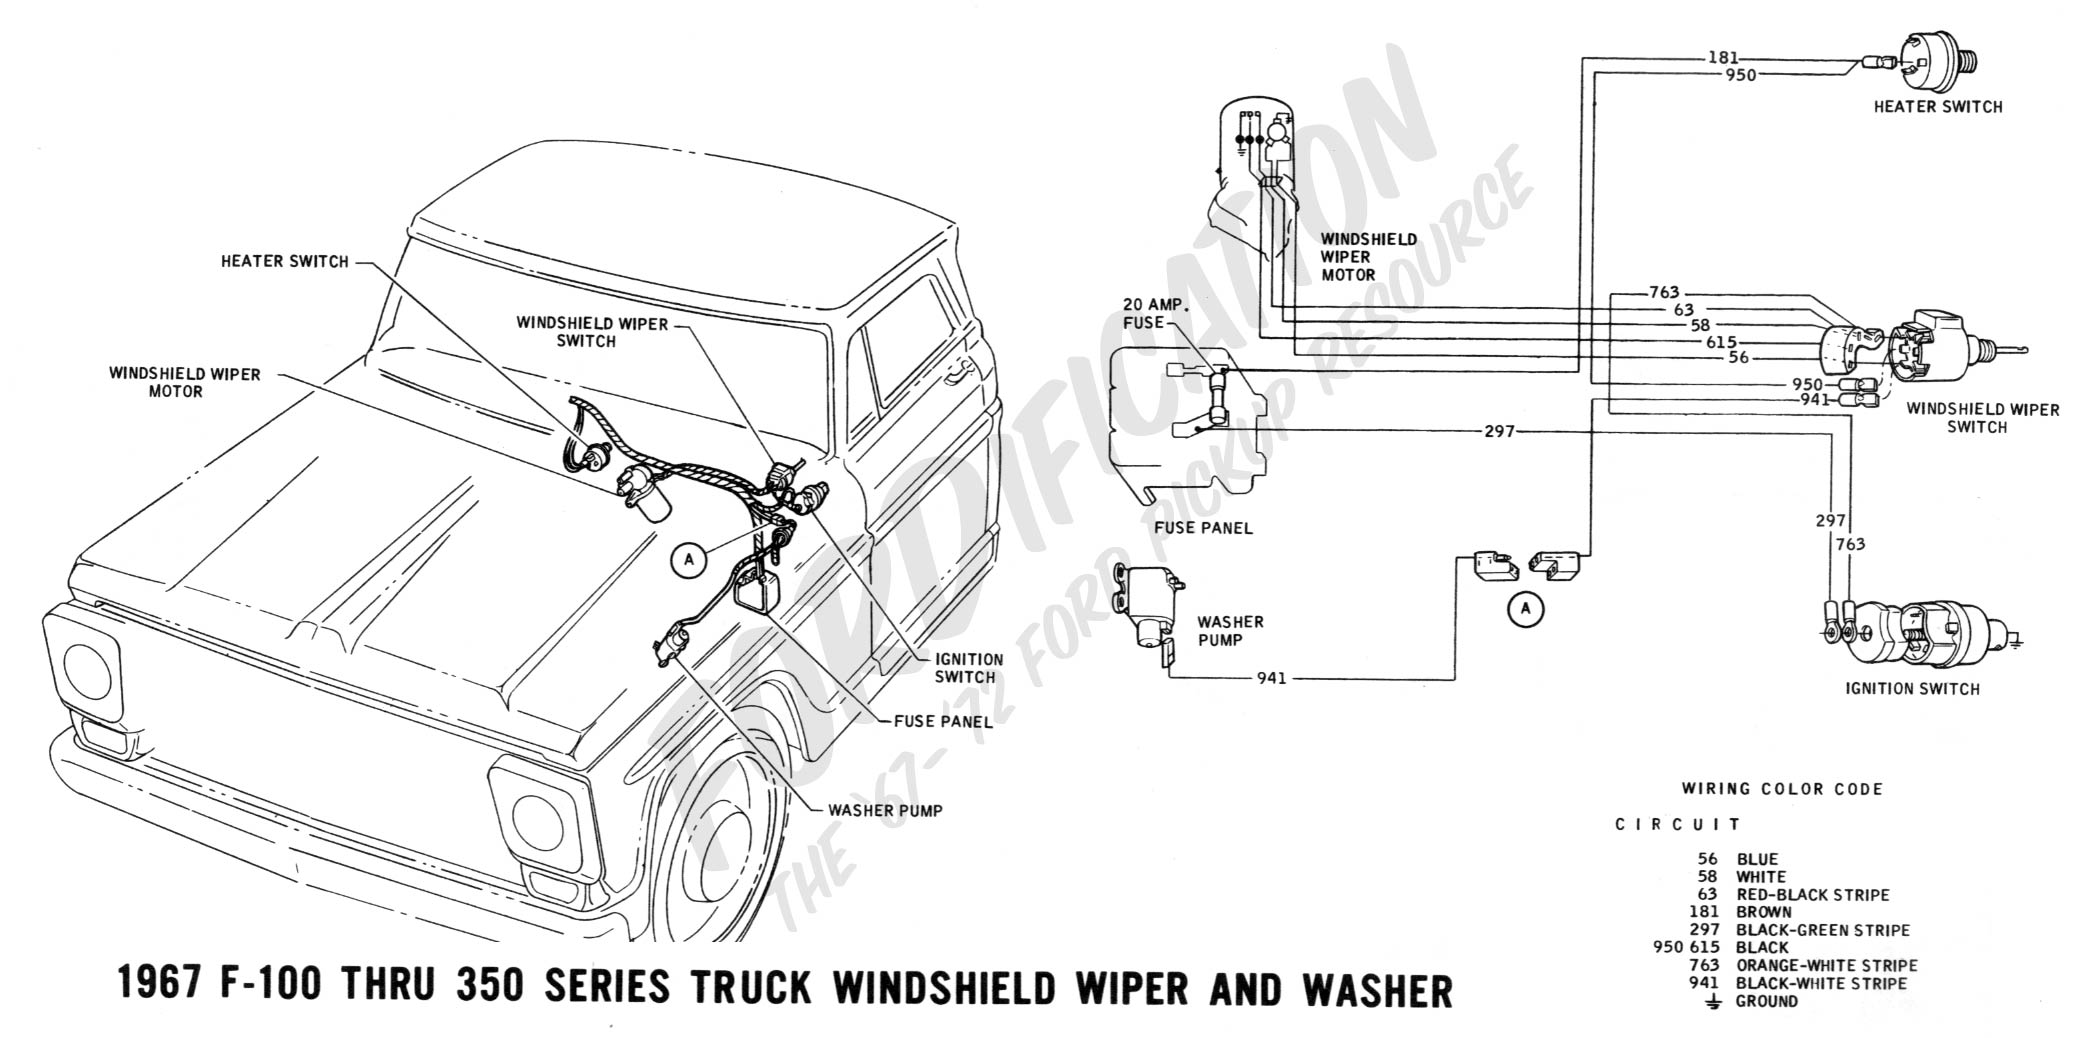 1993 Ford Bronco Fuse Panel Diagram Great Design Of Wiring 98 Ranger Box Truck Technical Drawings And Schematics Section H Layout